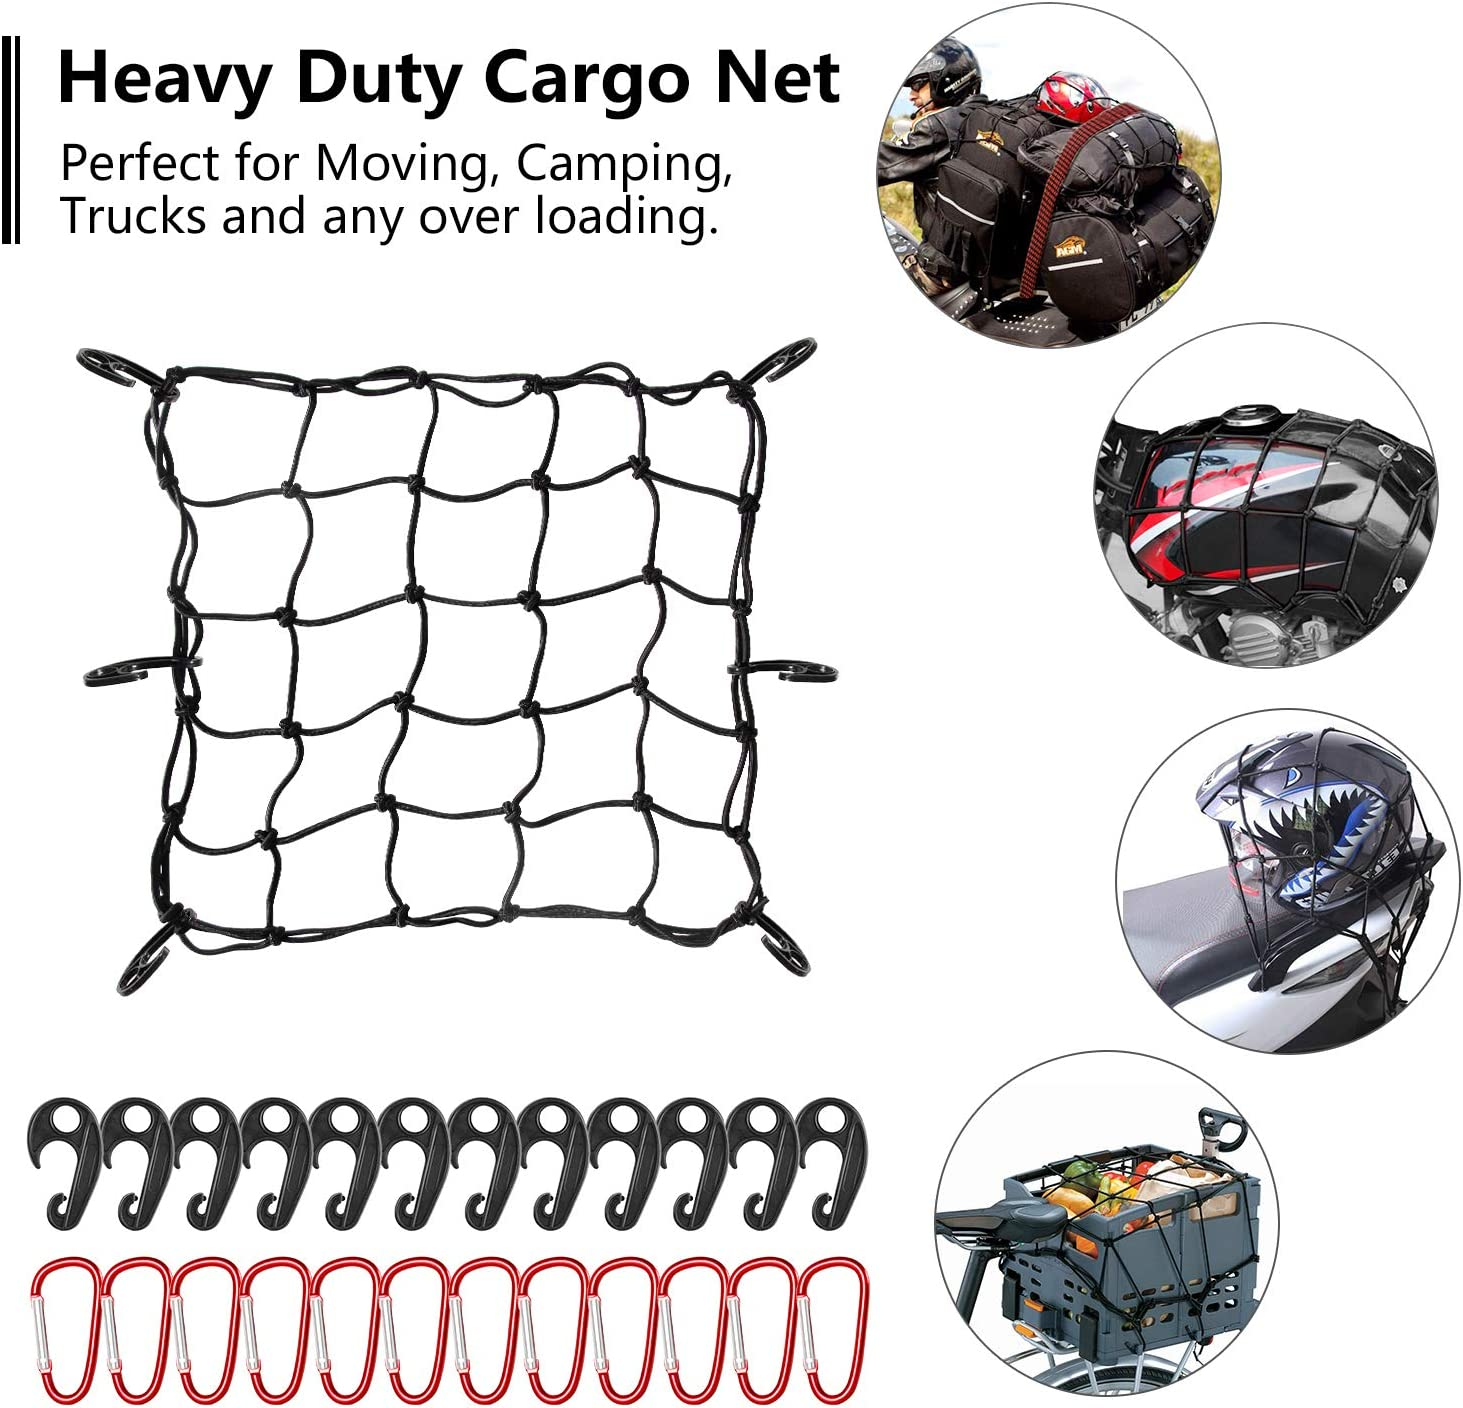 Bungee Net Stretches to 32 x 32  40 Luggage Fixed Strap Rope  8 Steel Carabiners+6 Hooks  3x3 Grid Holds Loads Tighter for Moving and Trucks Camping Red 16x16 Super Duty Cargo Net